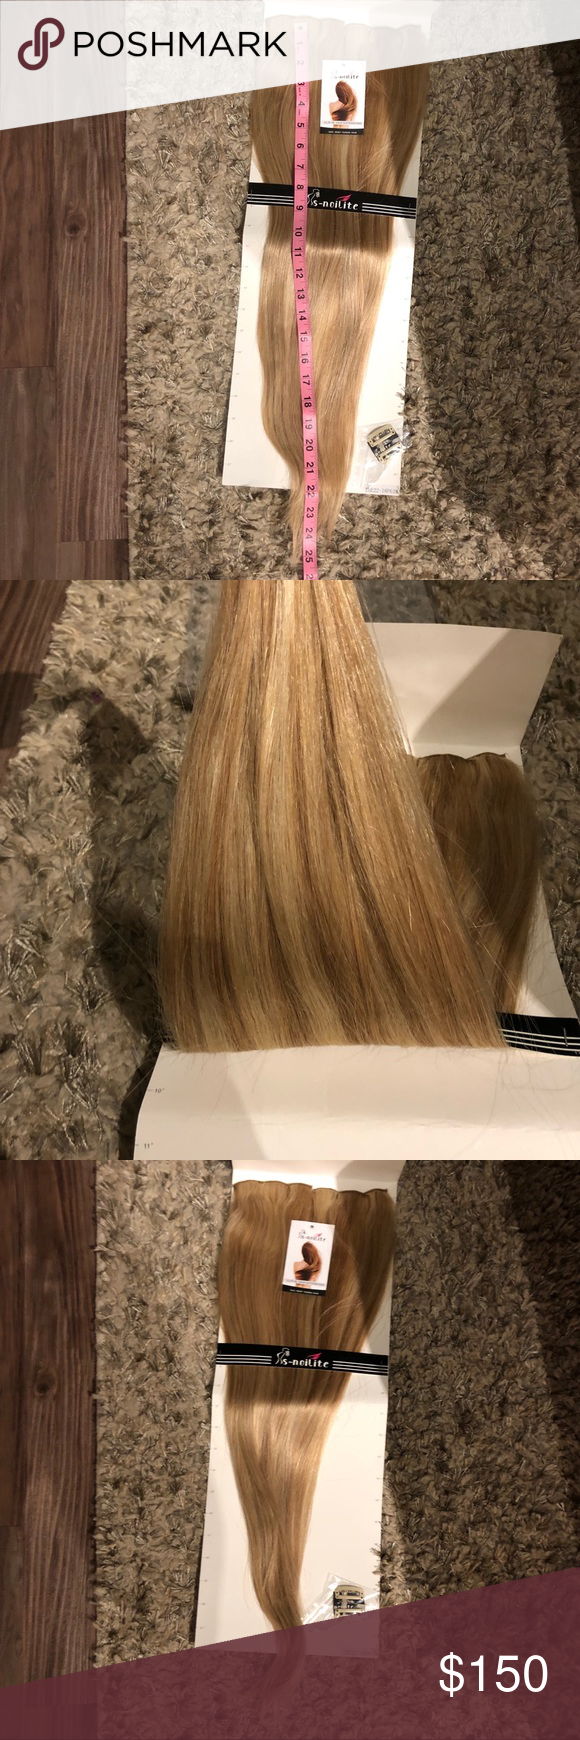 "Nwt$150 Remy 22"" clip on hair extension ash blonde Double Weft 100% Remy Human Hair Clip in Extensions Highlight #18/613 22'' Grade 7A Quality Full Head Thick Long Soft Silky Straight 8pcs 18clips(22/22 inch 160g,Light Ash Blonde/Bleach Blonde) it weighs 5.6 ounces. These are brand new still in package they the packaging says 22"" but they are longer please check photo for measurements. The color is ash blonde mix with blonde you can always tone them with purple shampoo to your likings. remy hair extensions Accessories Hair Accessories #lightashblonde"